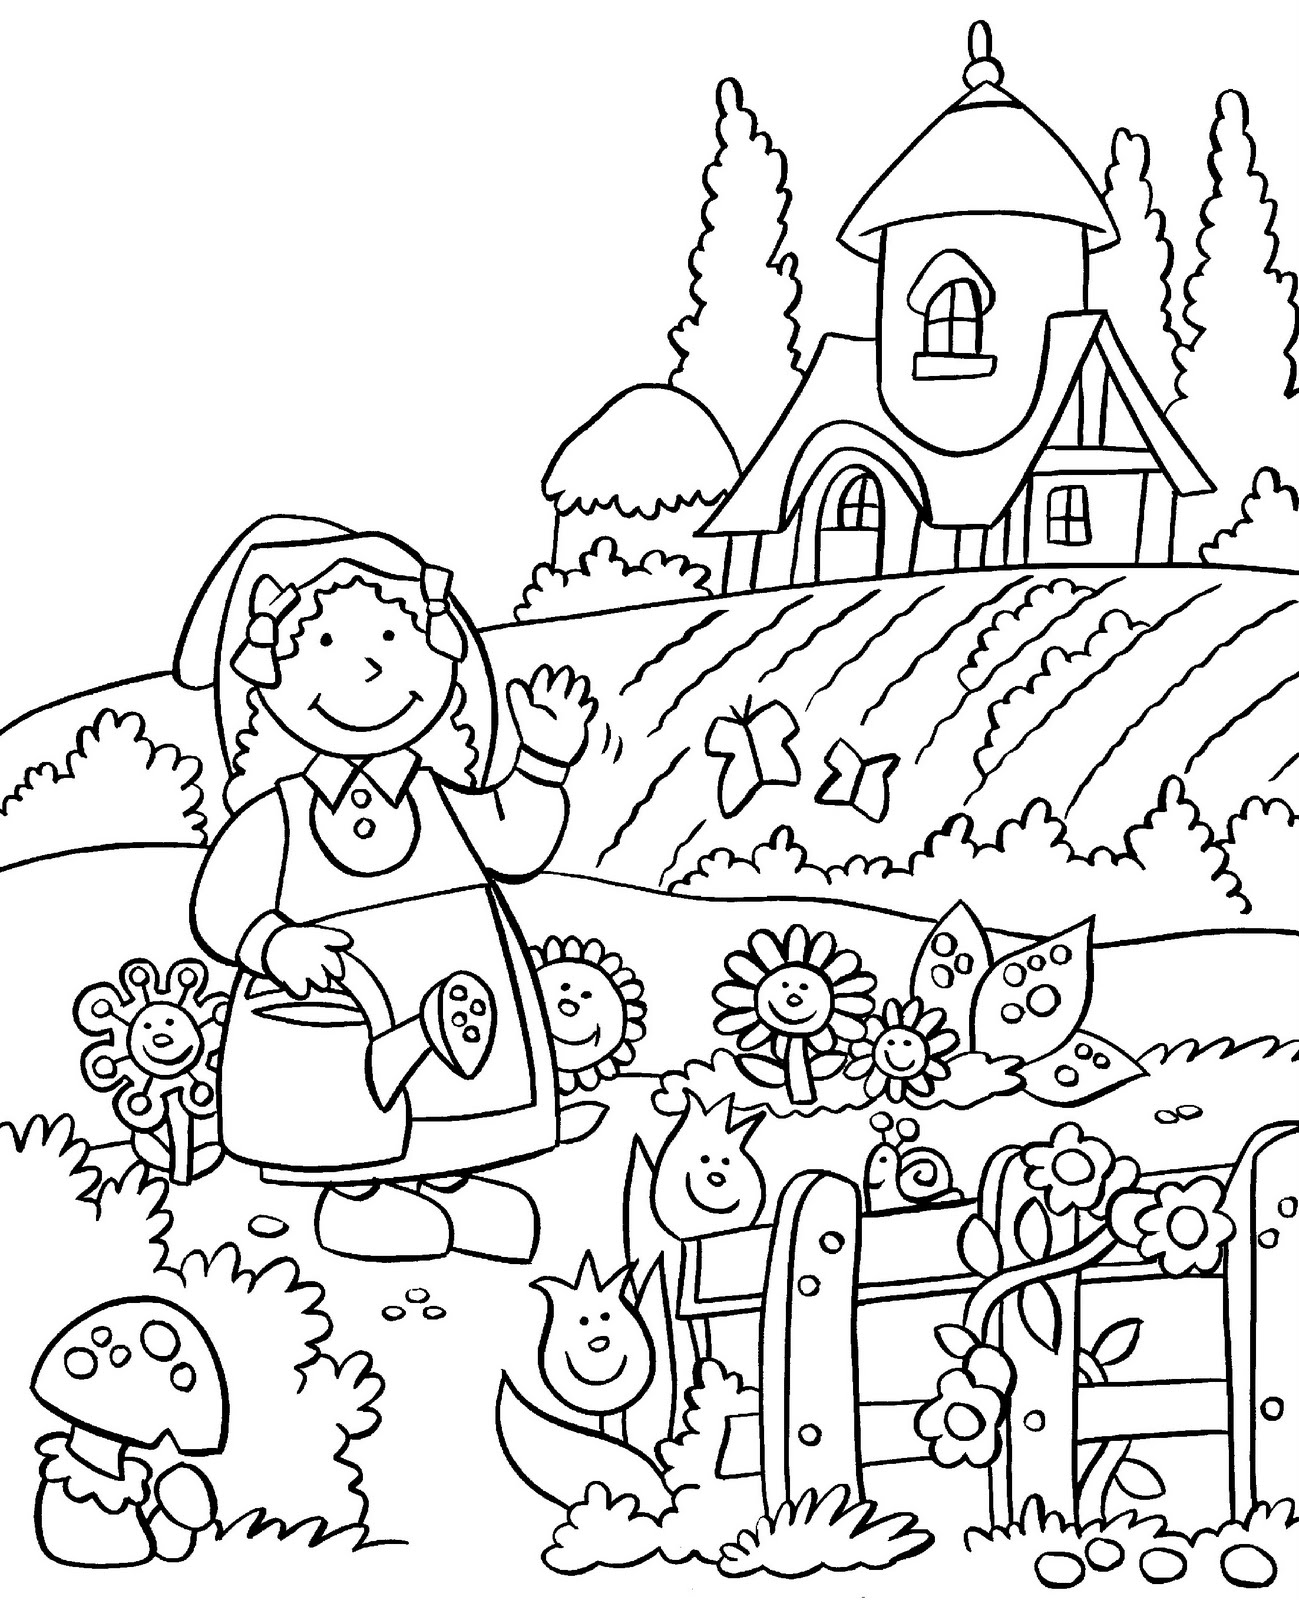 garden colouring page flower garden coloring pages to download and print for free colouring page garden